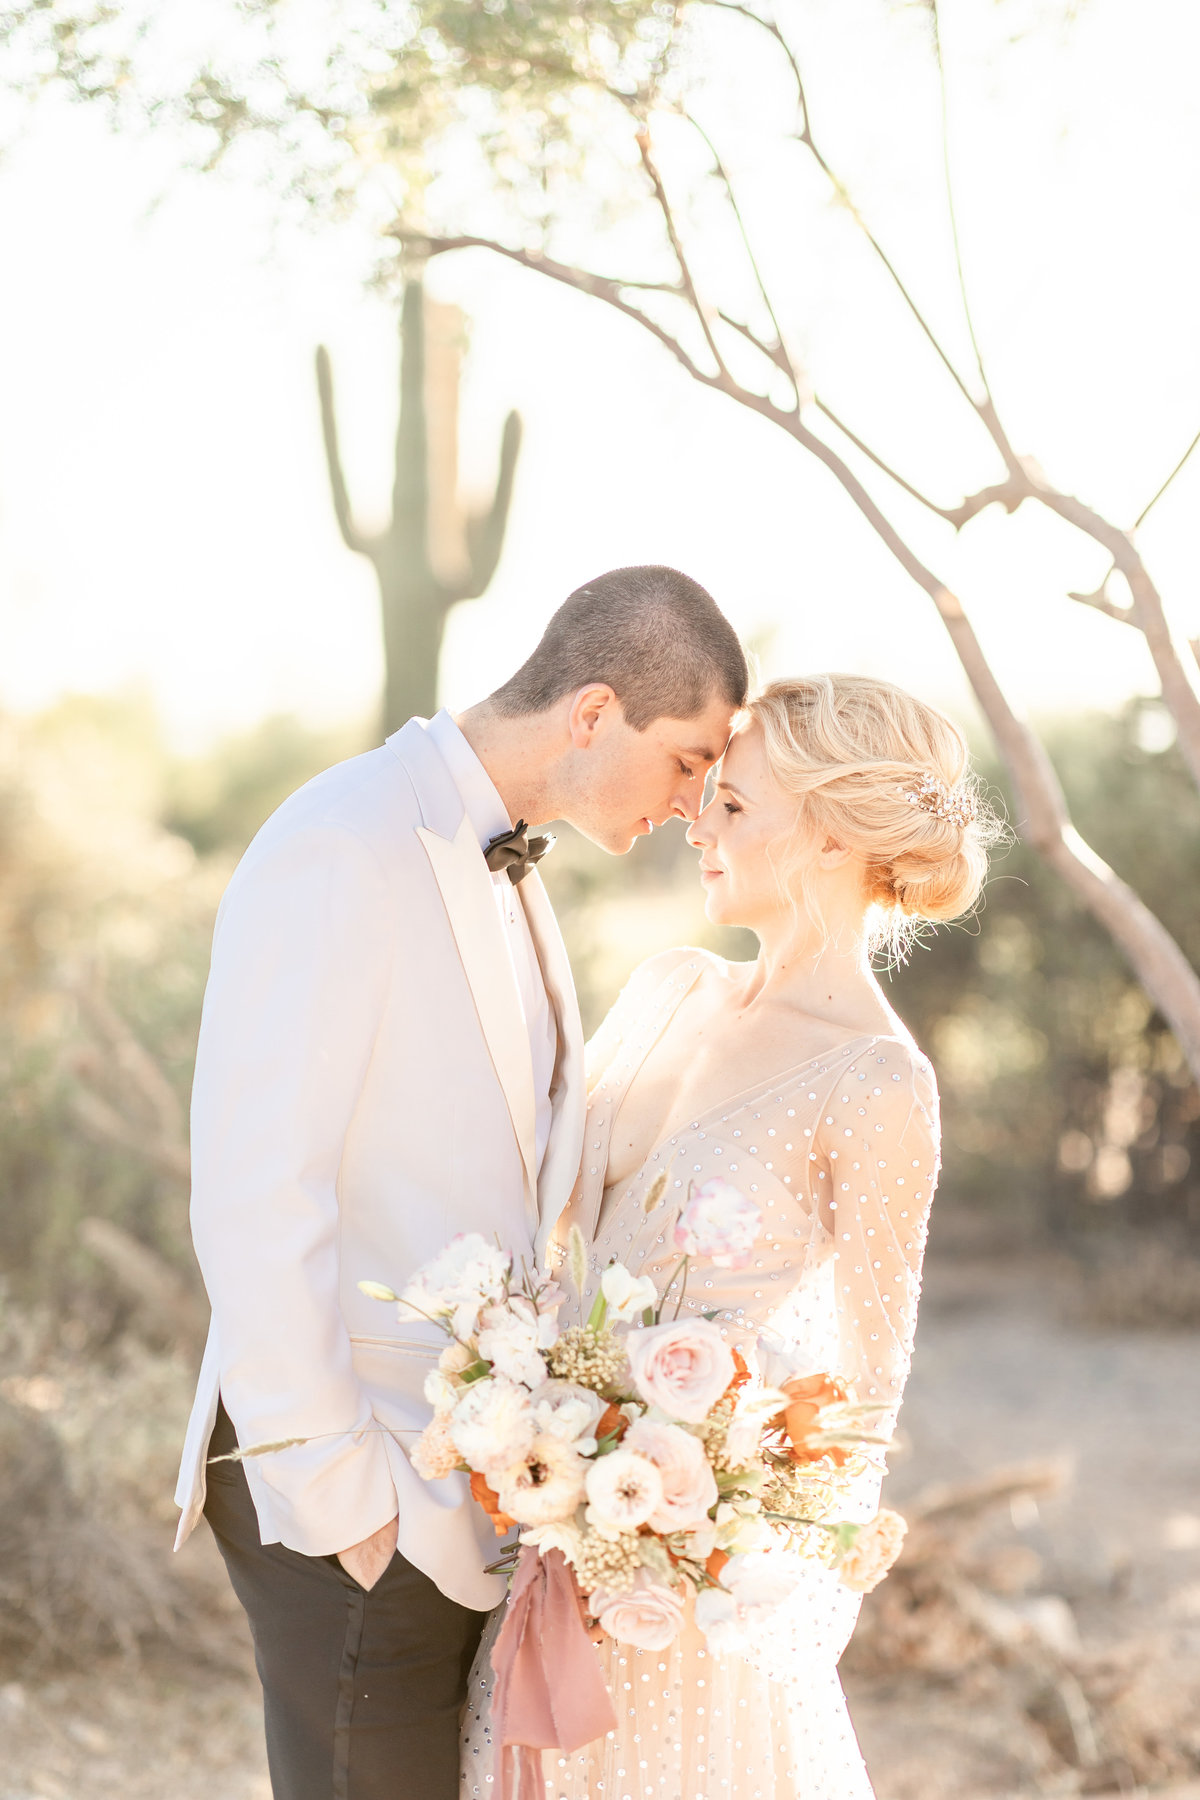 The Country Club at DC Ranch wedding with bohemian style bride at Scottsdale, Arizona wedding